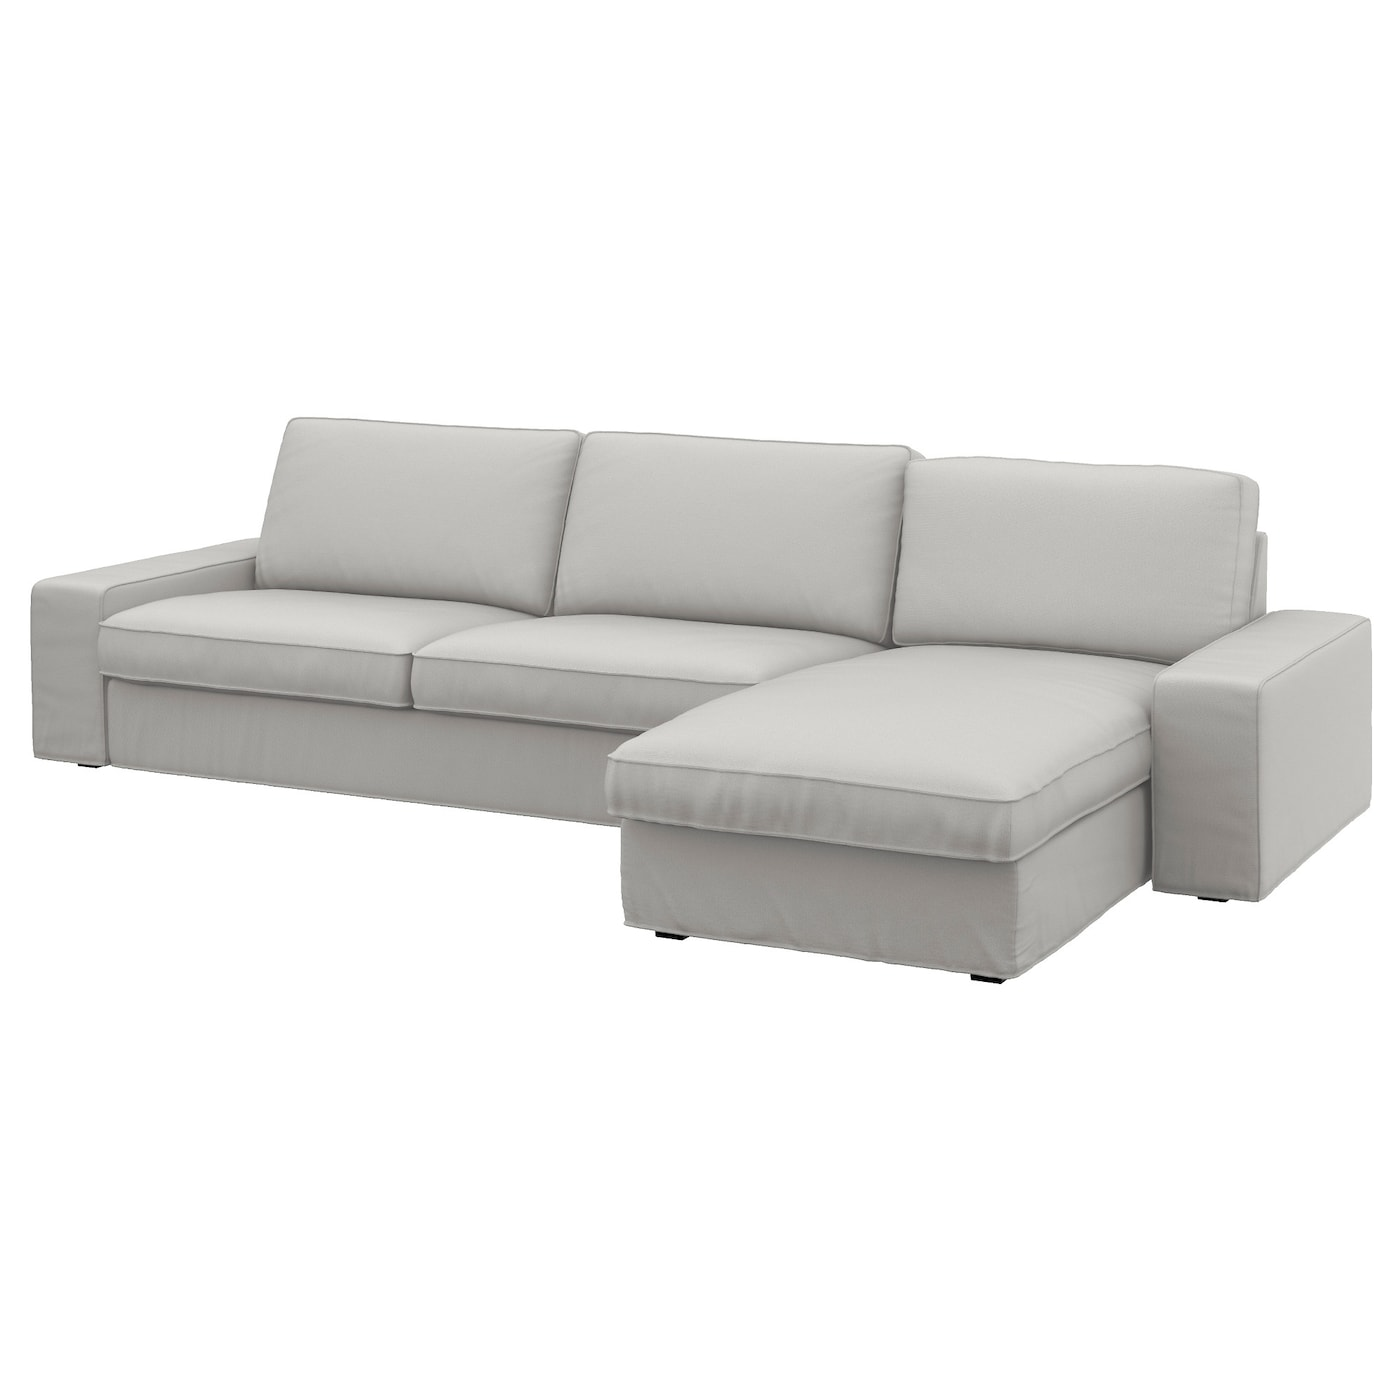 Kivik 4 seat sofa with chaise longue ramna light grey ikea for Sofa en l liquidation